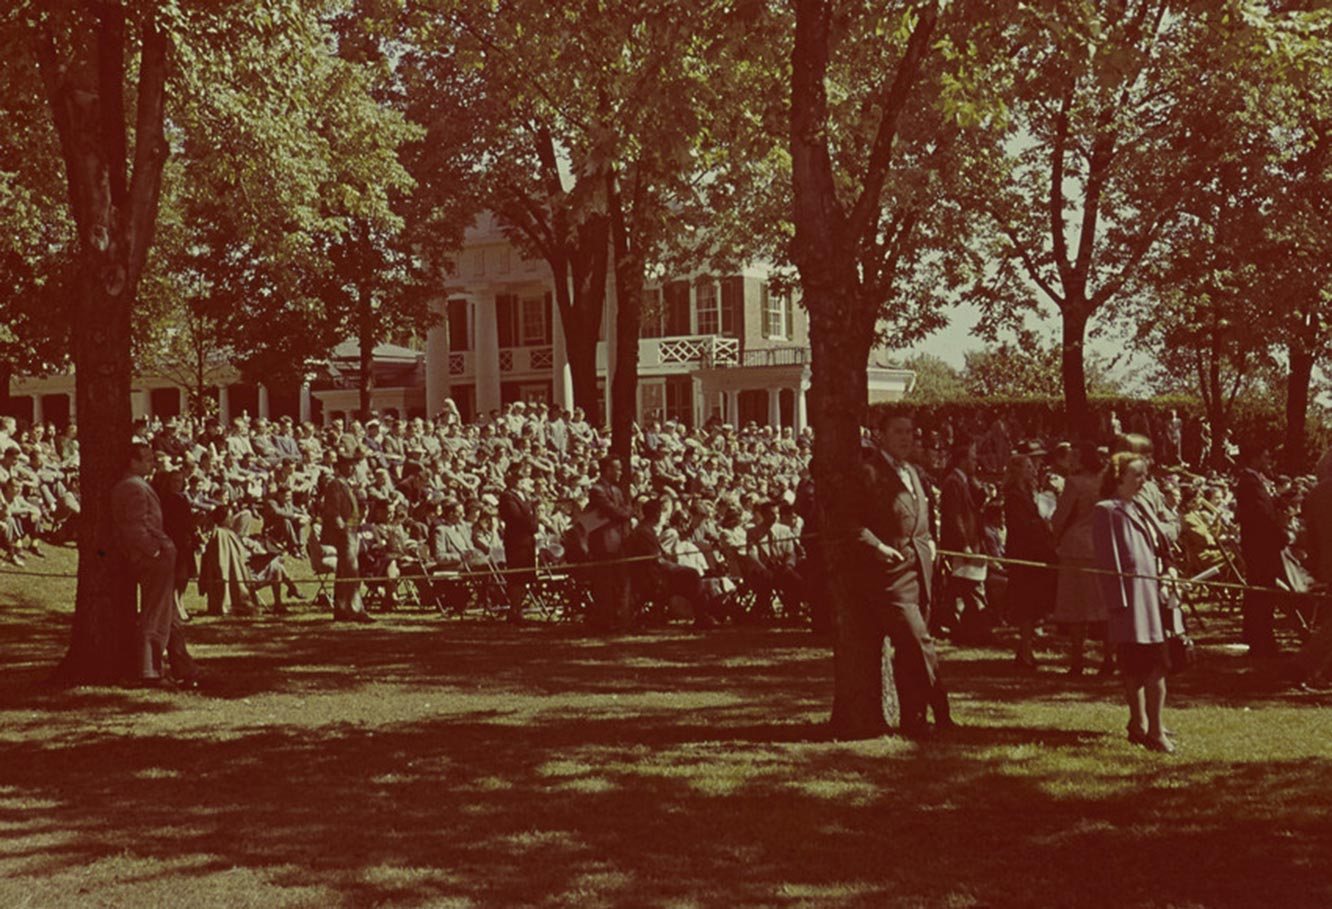 People gathered on the Lawn near Pavilion X on a cool autumn day to witness the installation of Colgate W. Darden, UVA's third president.